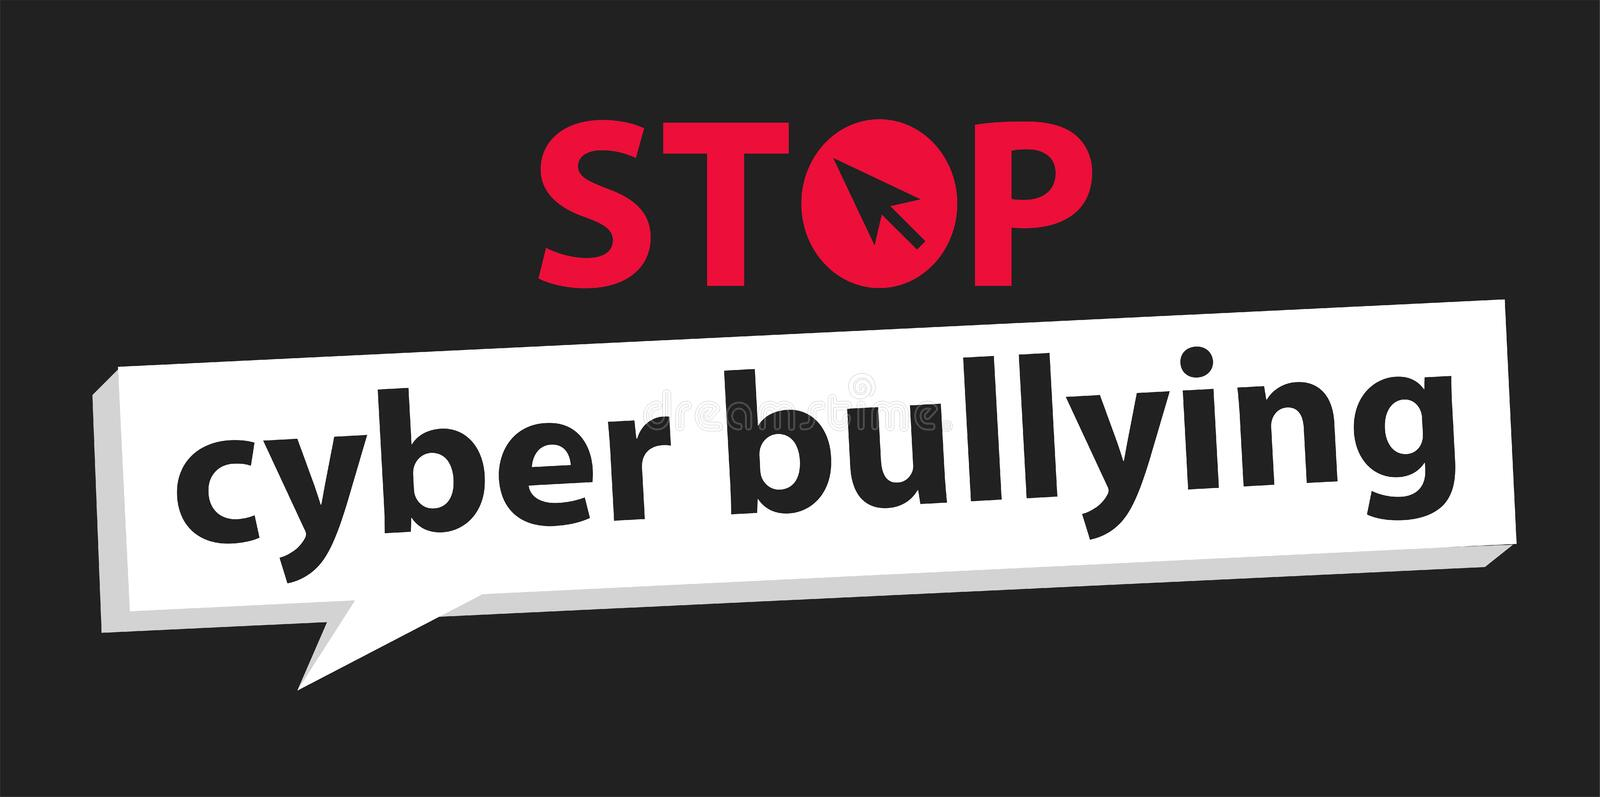 Stop cyber bullying background stock illustration